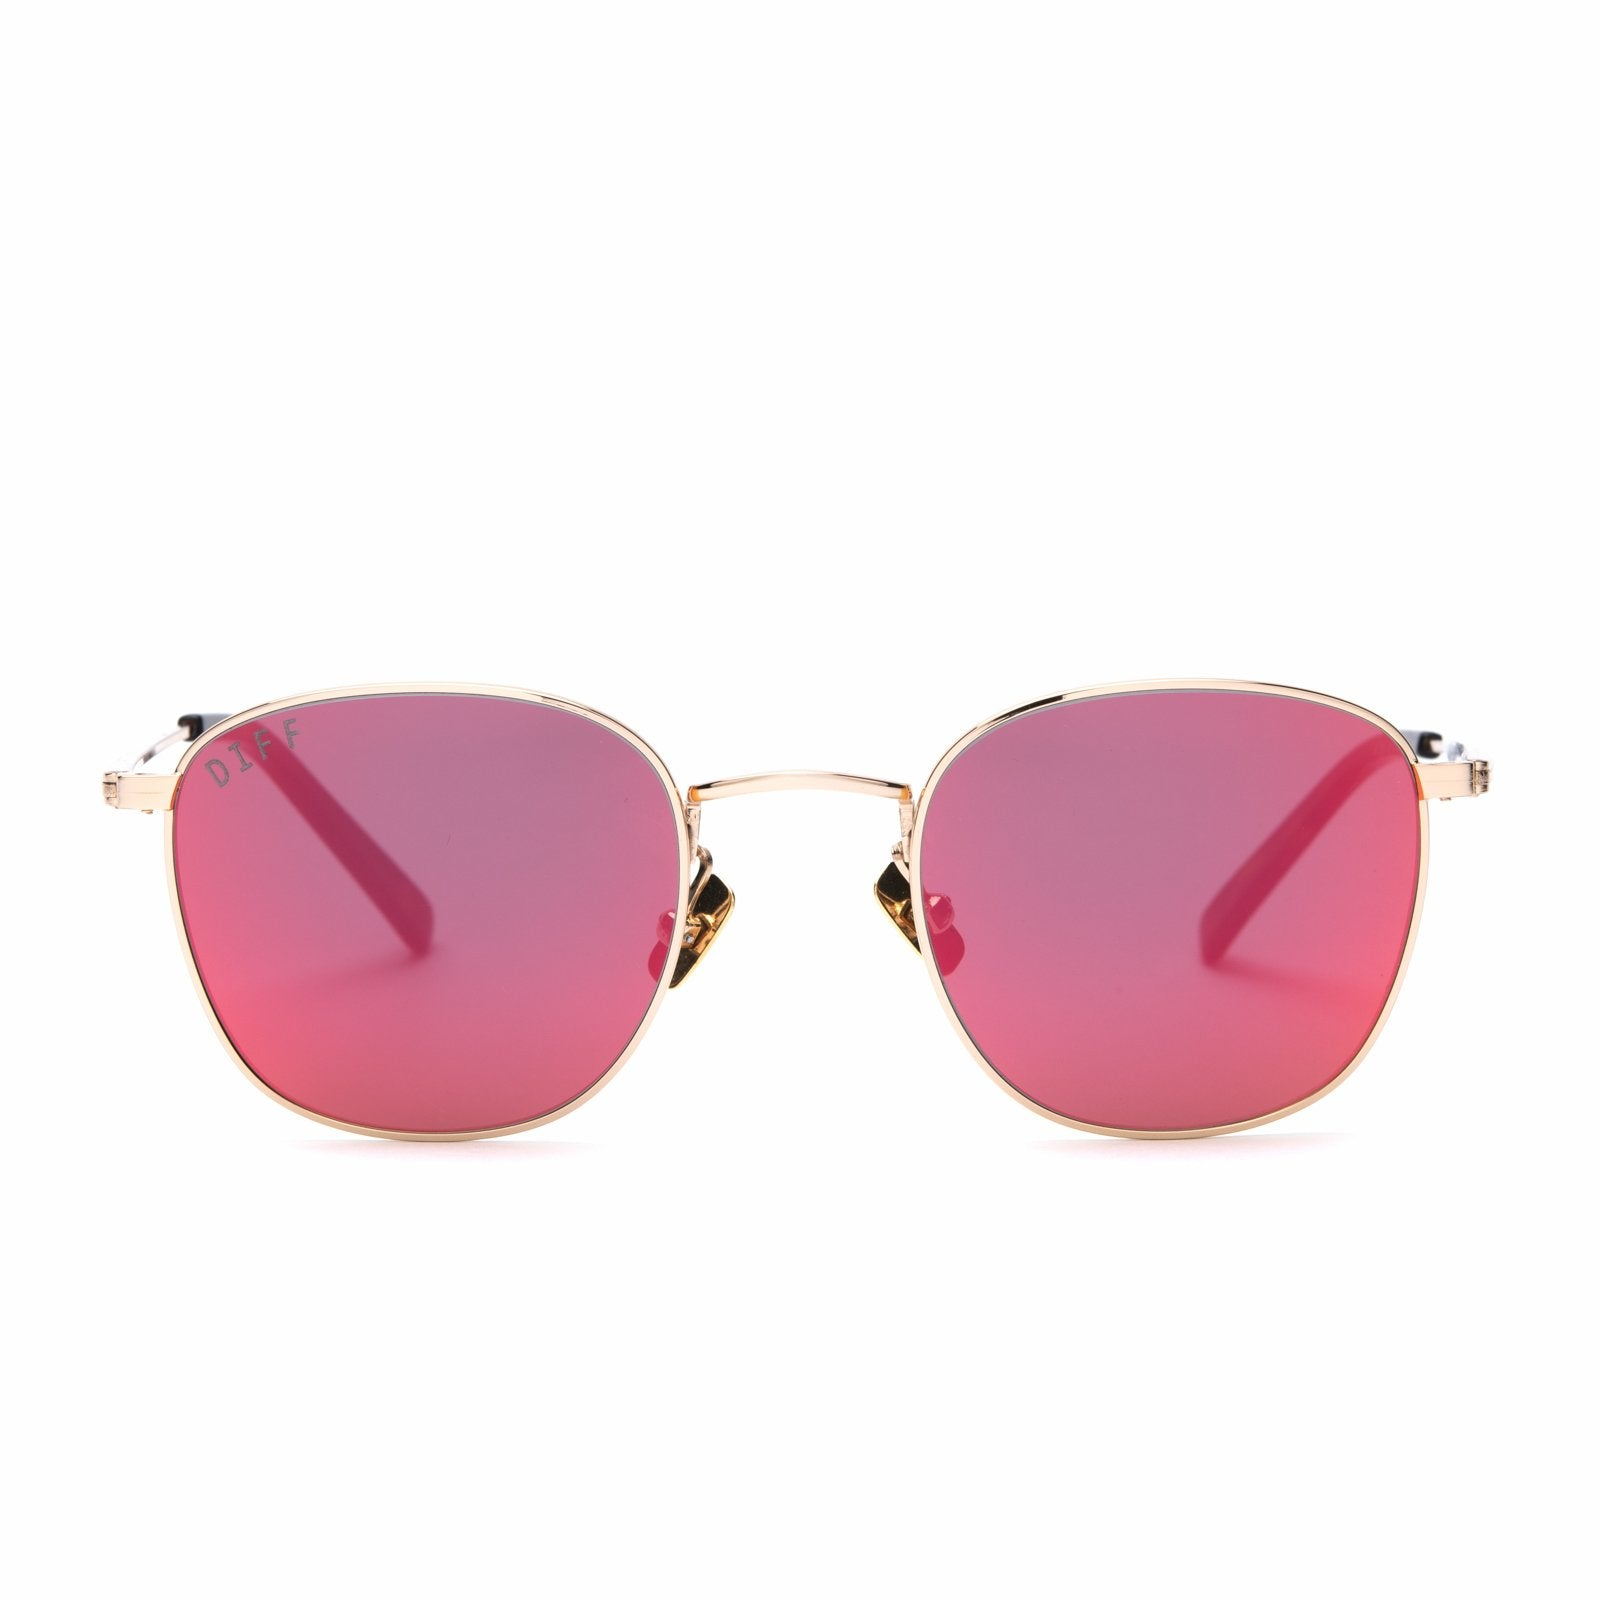 Axel sunglasses with gold frames and red mirror lens front view